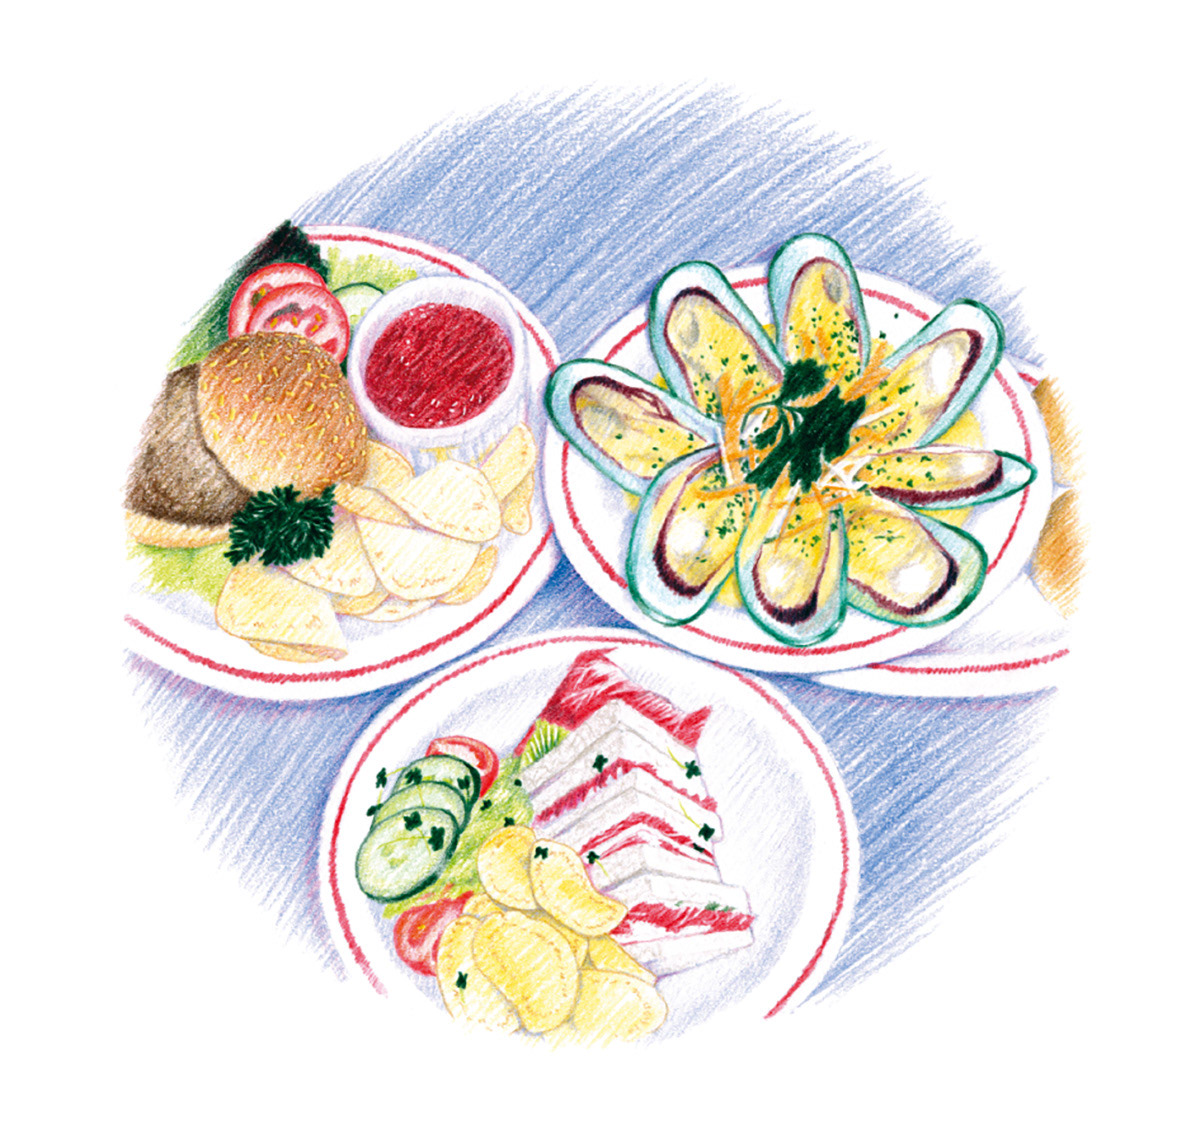 Food  vegetables fish Shell Fish lunch dinner seafood Health diet breakfast